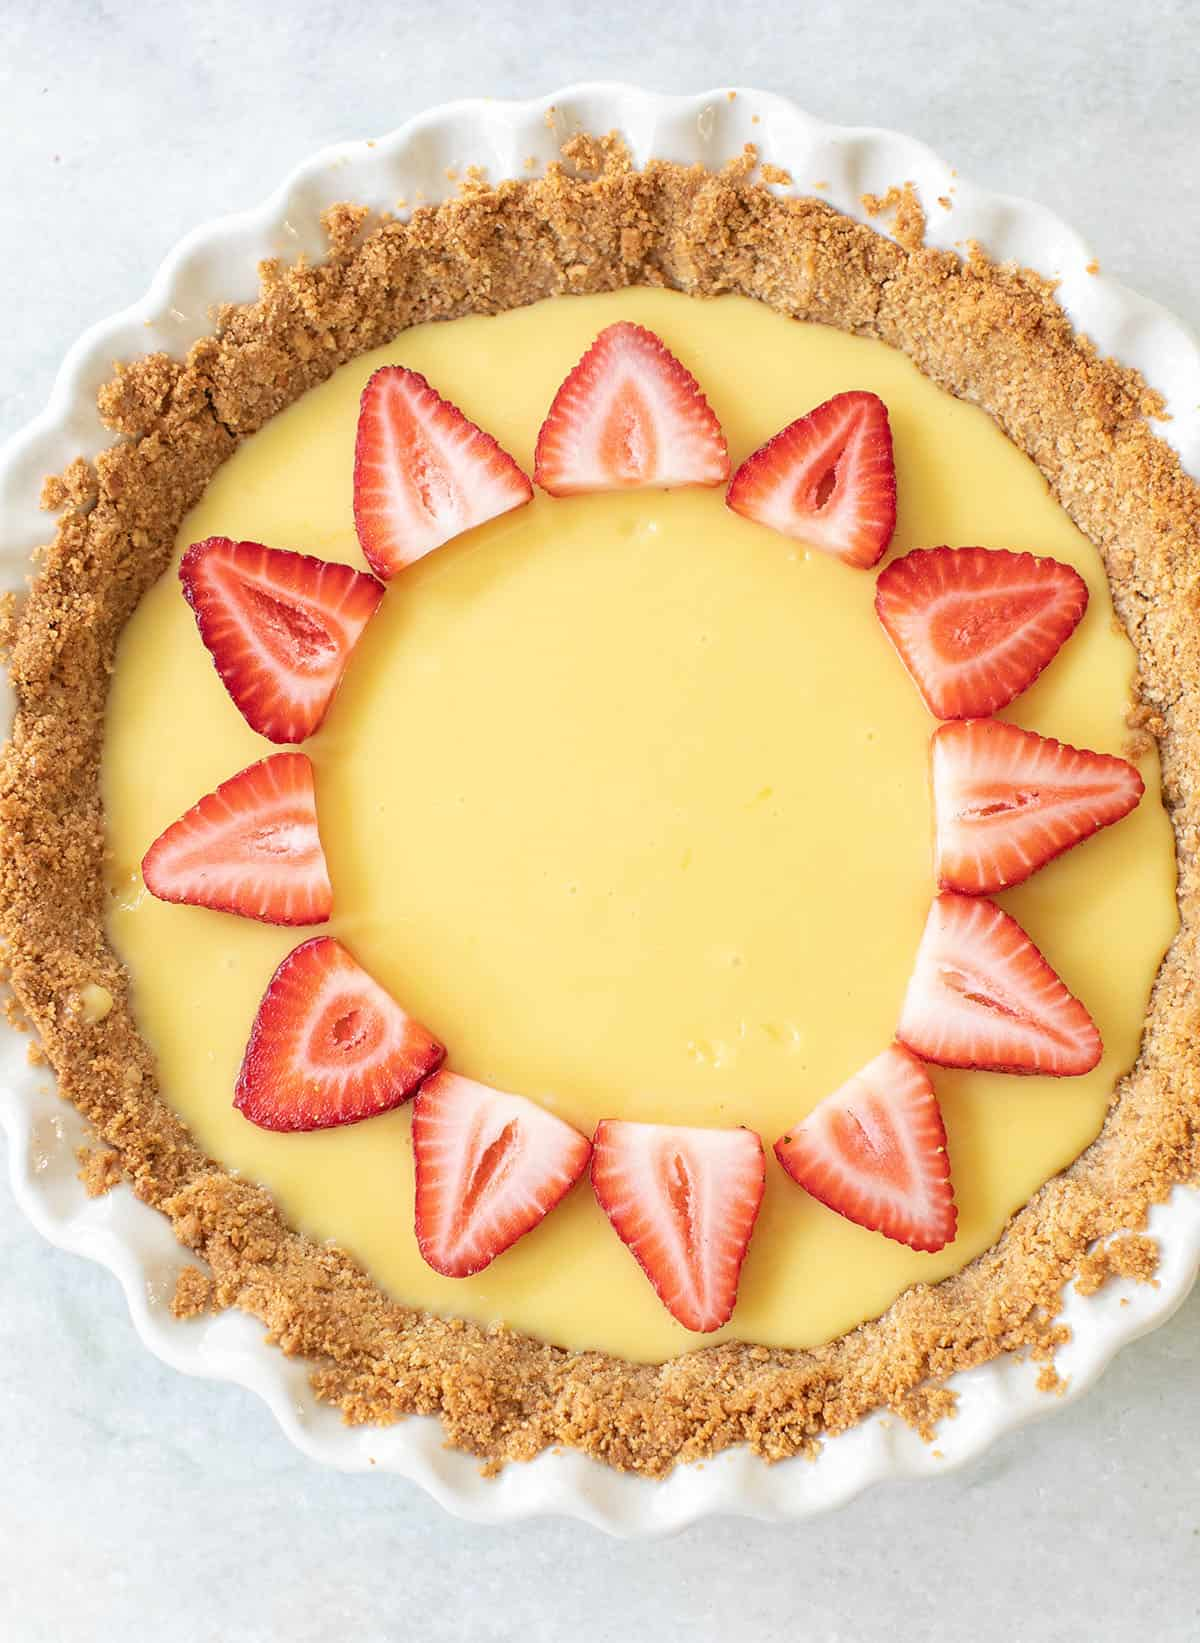 pie recipe made with lemon juice with sliced strawberries over the top